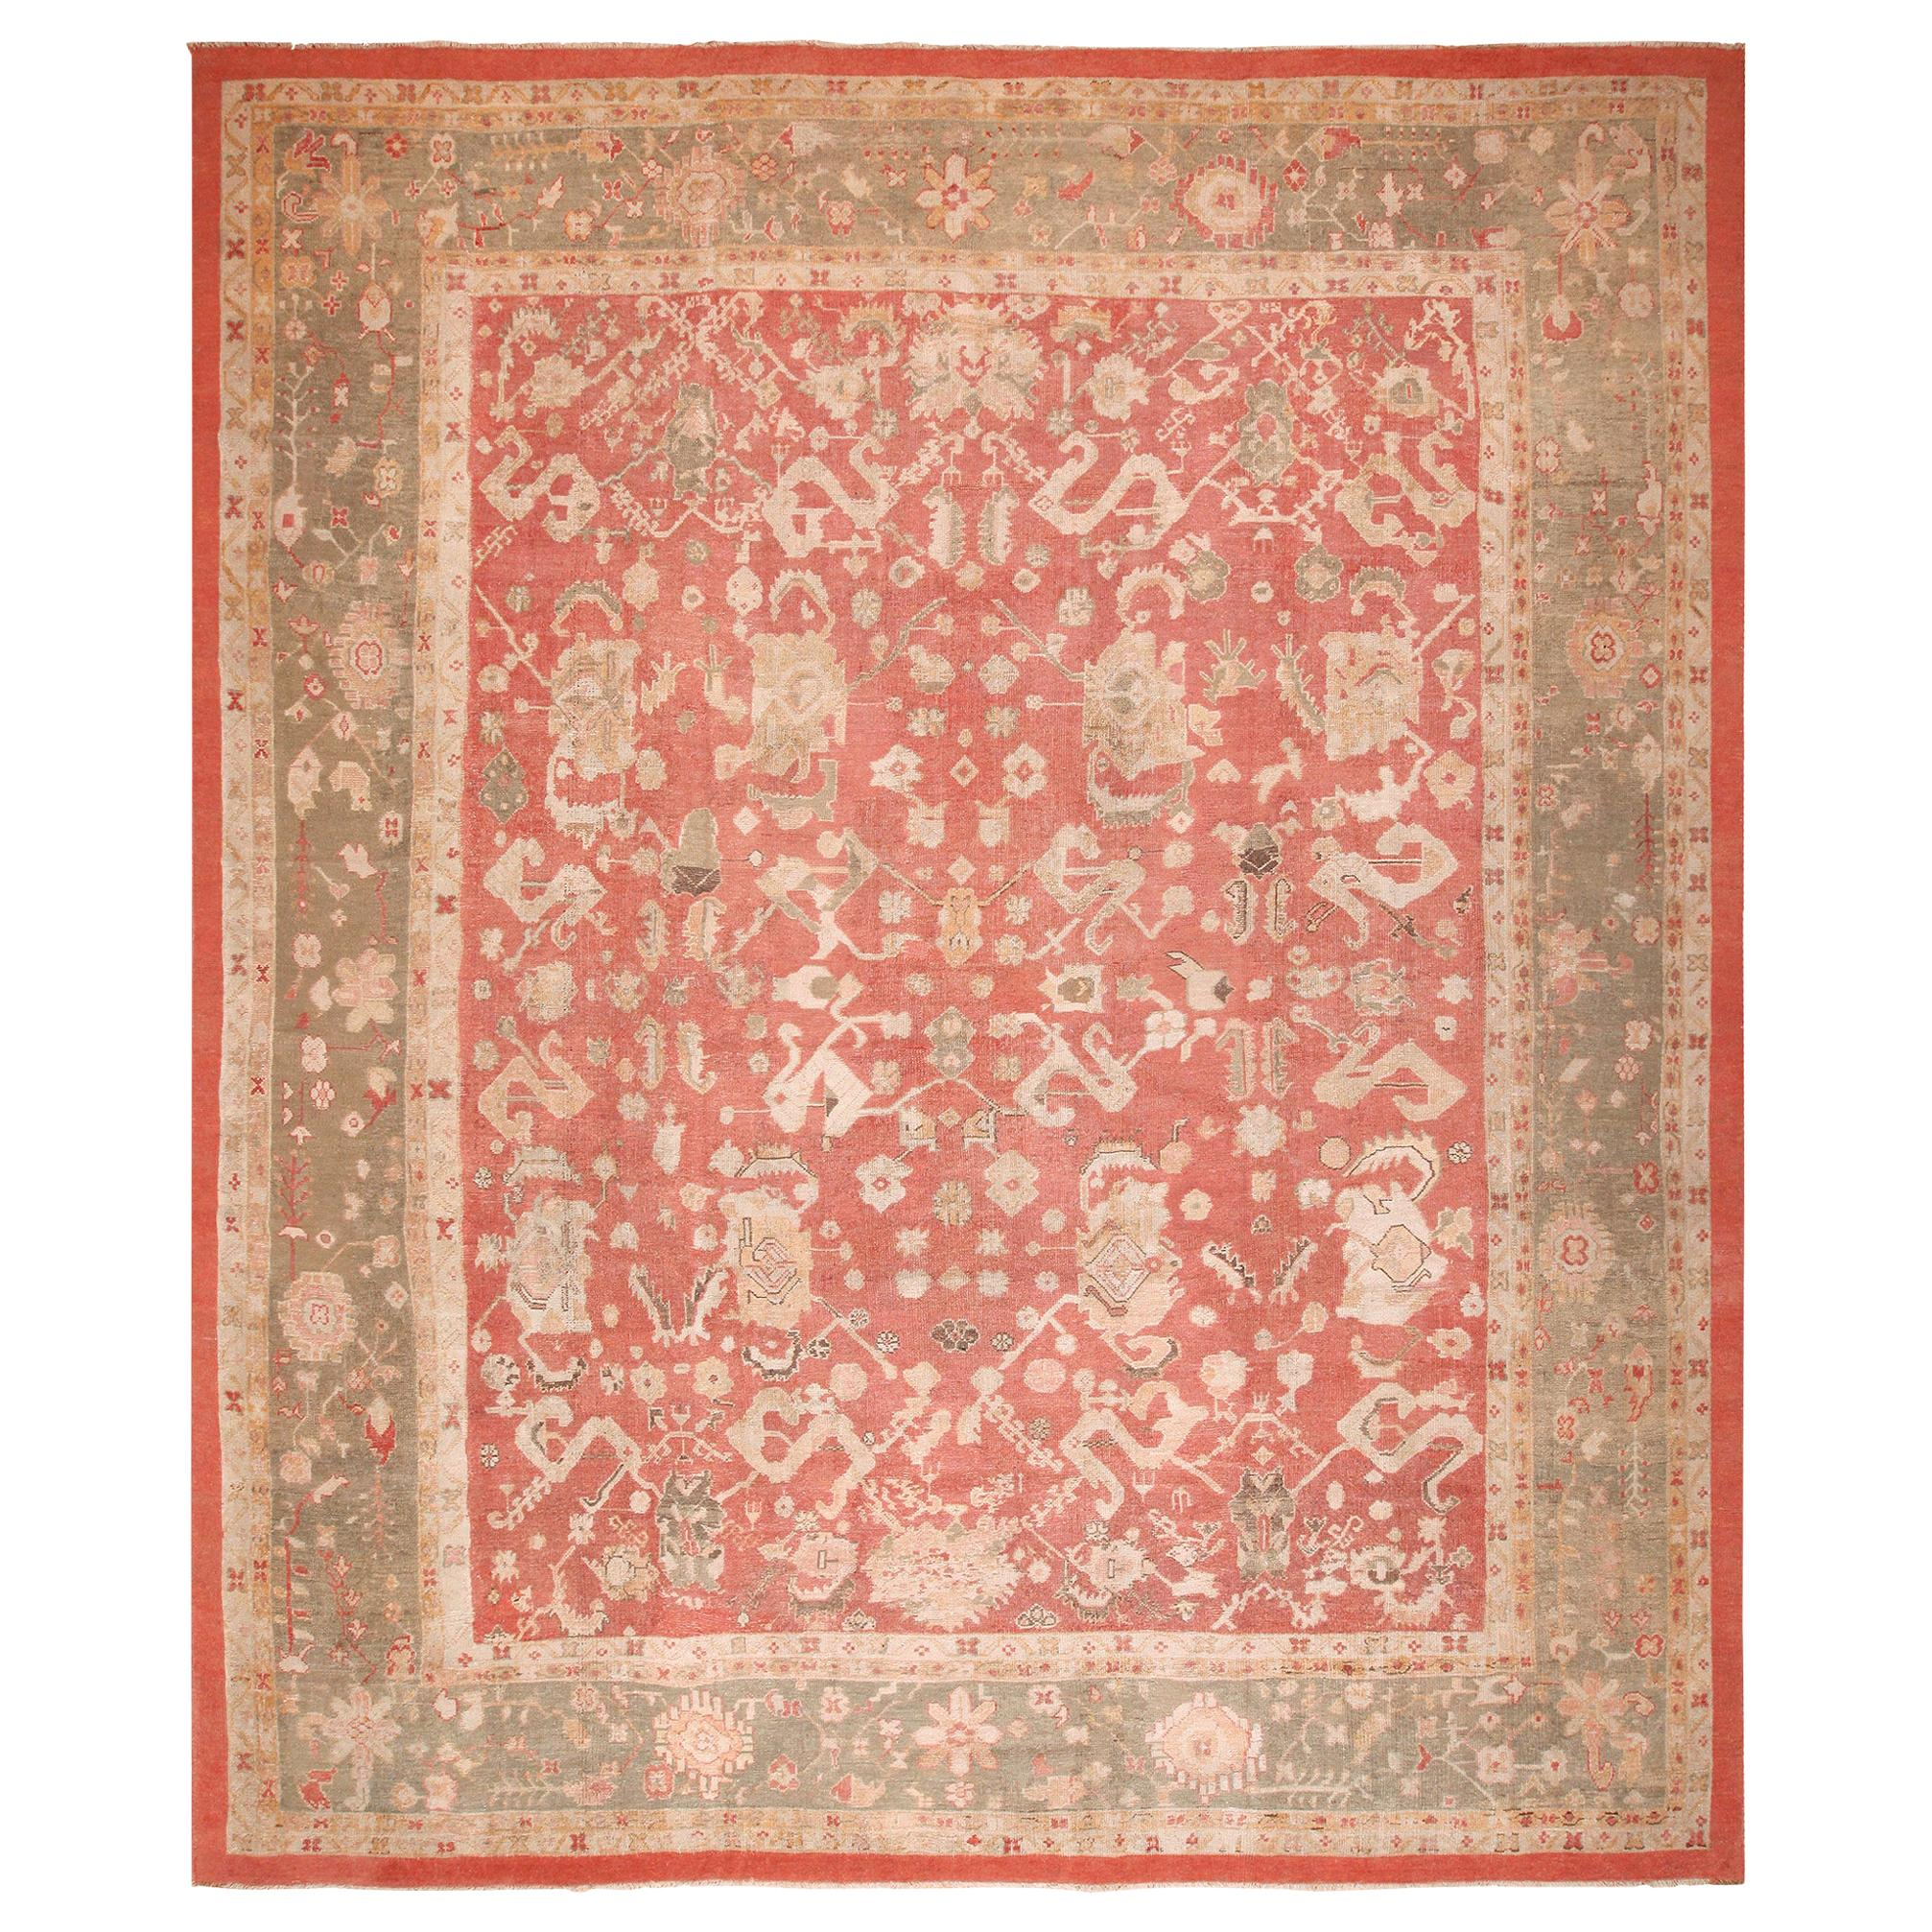 Antique Turkish Oushak Rug. Size: 13 ft. 6 in x 16 ft. 6 in